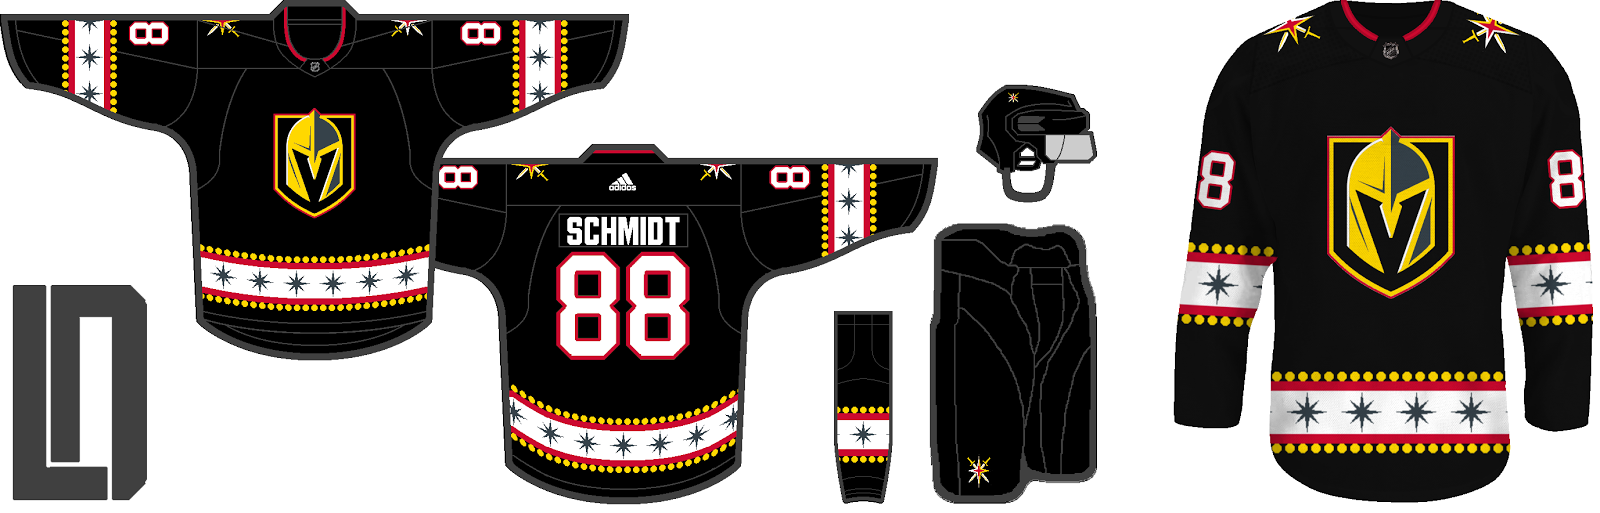 Vegas+Golden+Knights+Concept.png